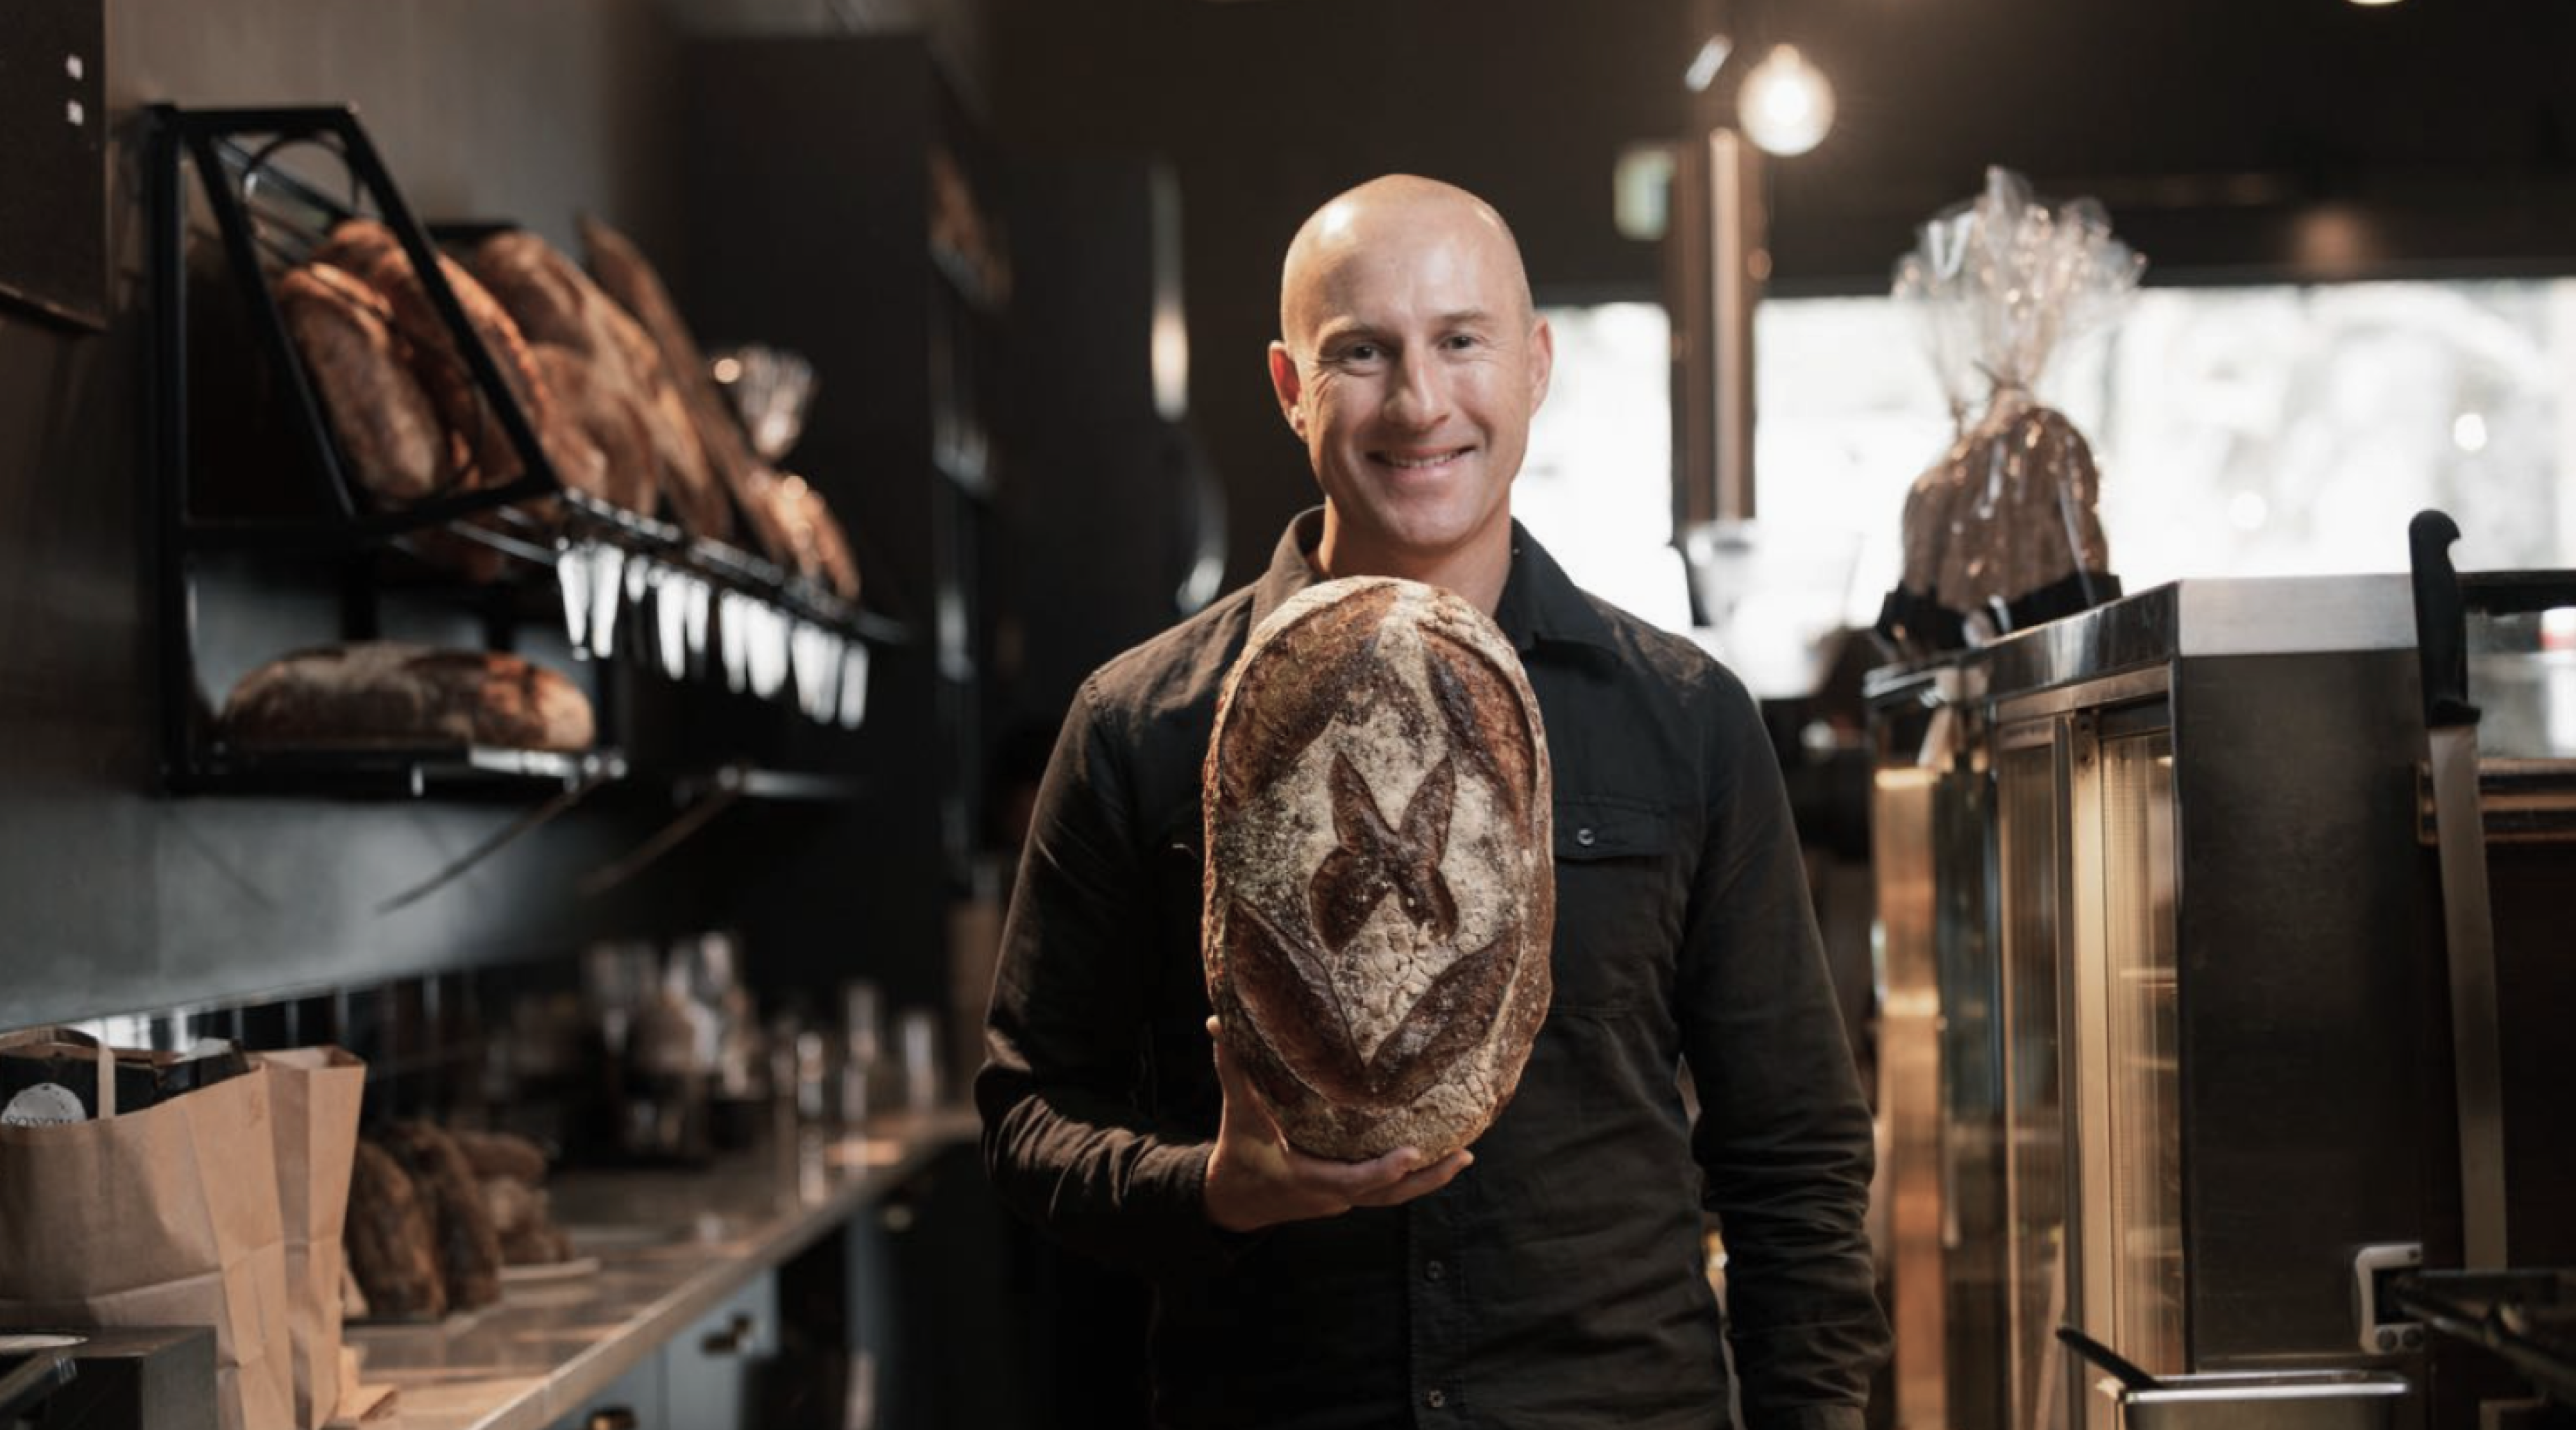 Founder of Sonoma Baking Company holding a loaf of bread